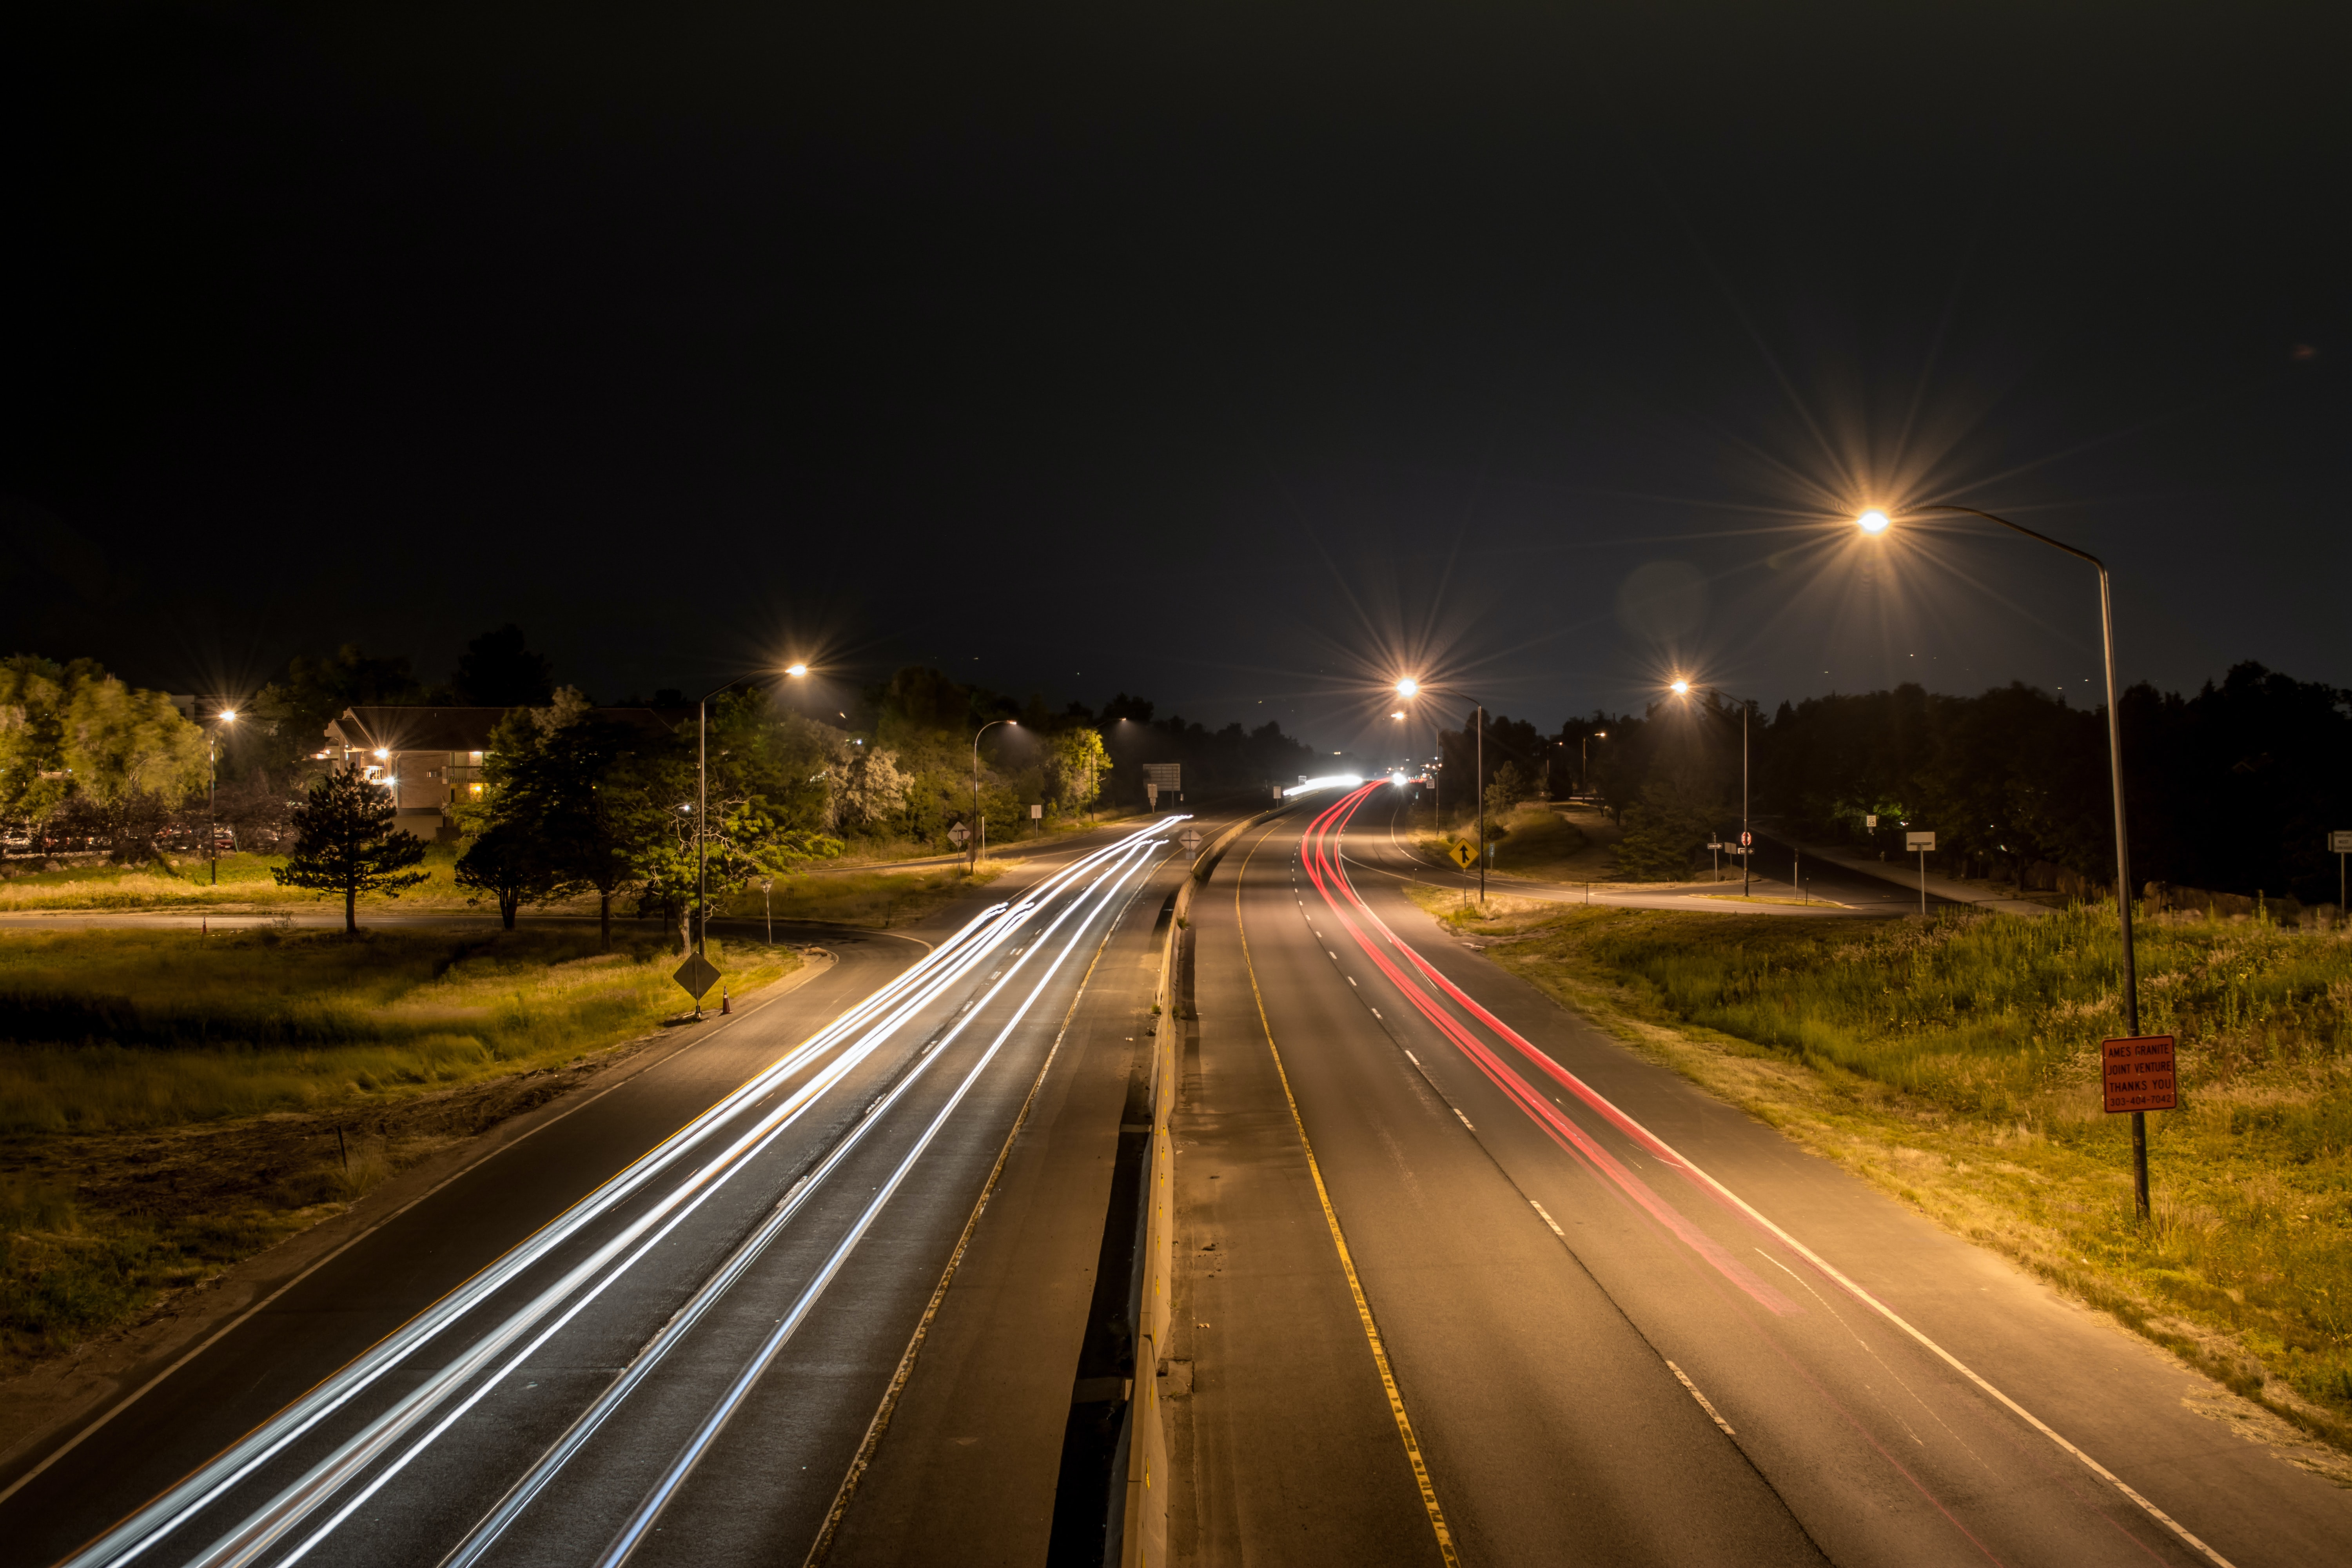 Car lights form streaks of red on busy city street at night